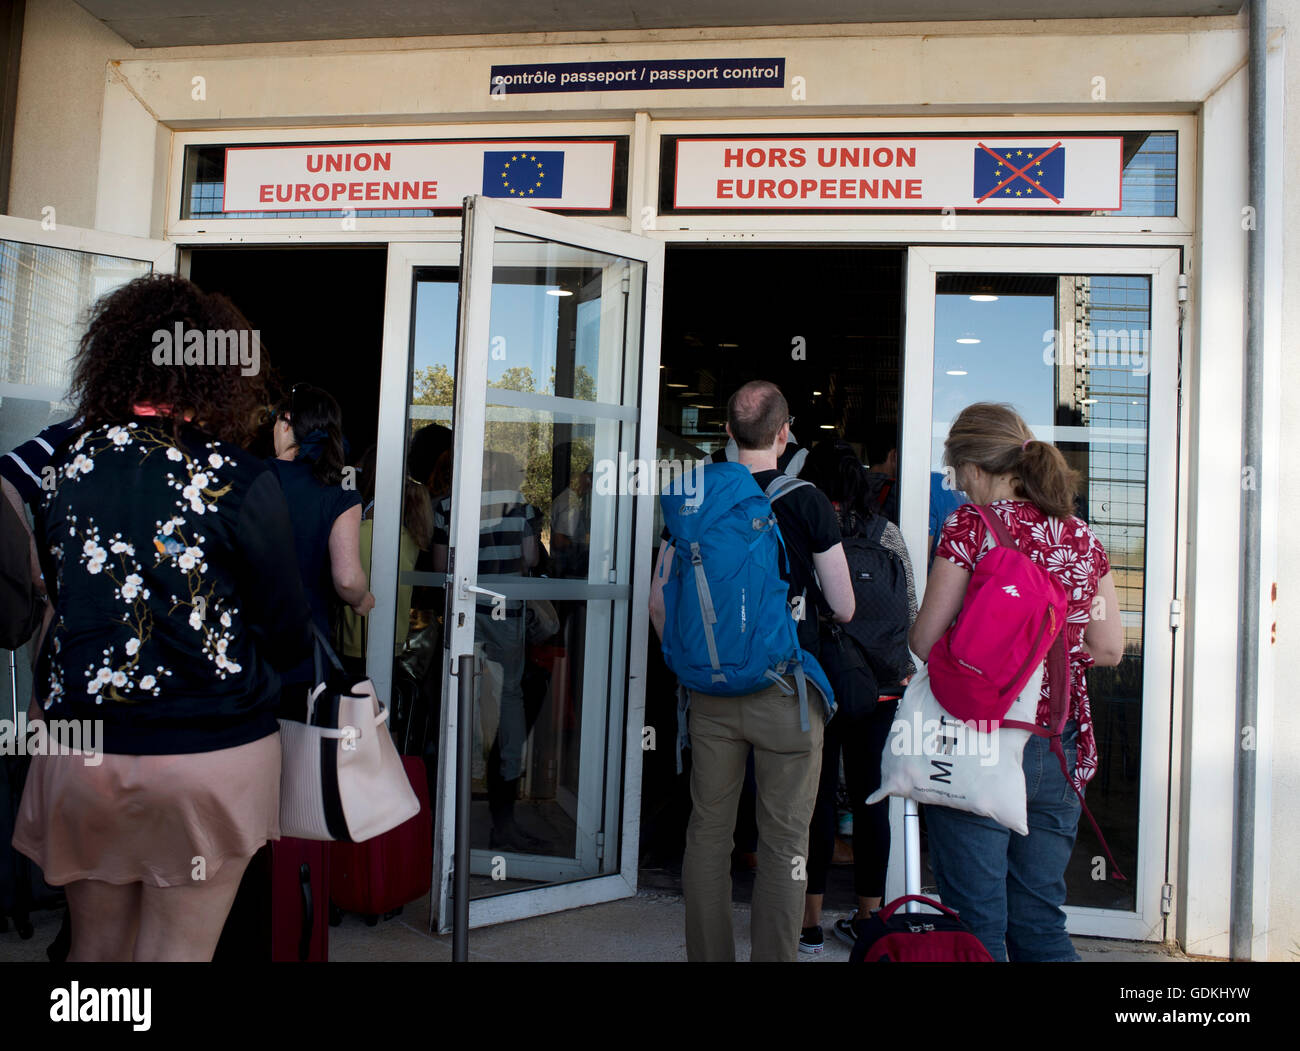 Waiting to go through French passport control, with one door for European Union and one for non EU passengers - Stock Image